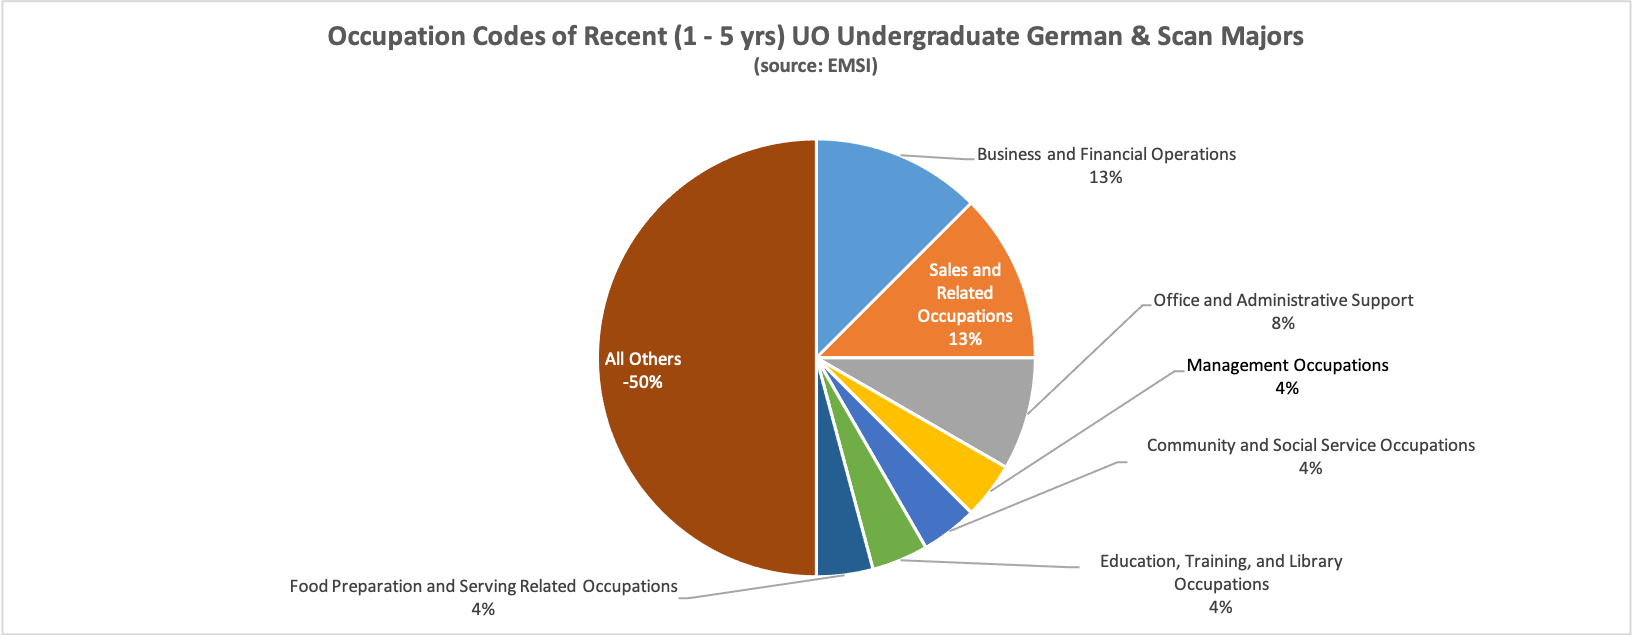 pie chart of occupations of graduates in past 1-5 years